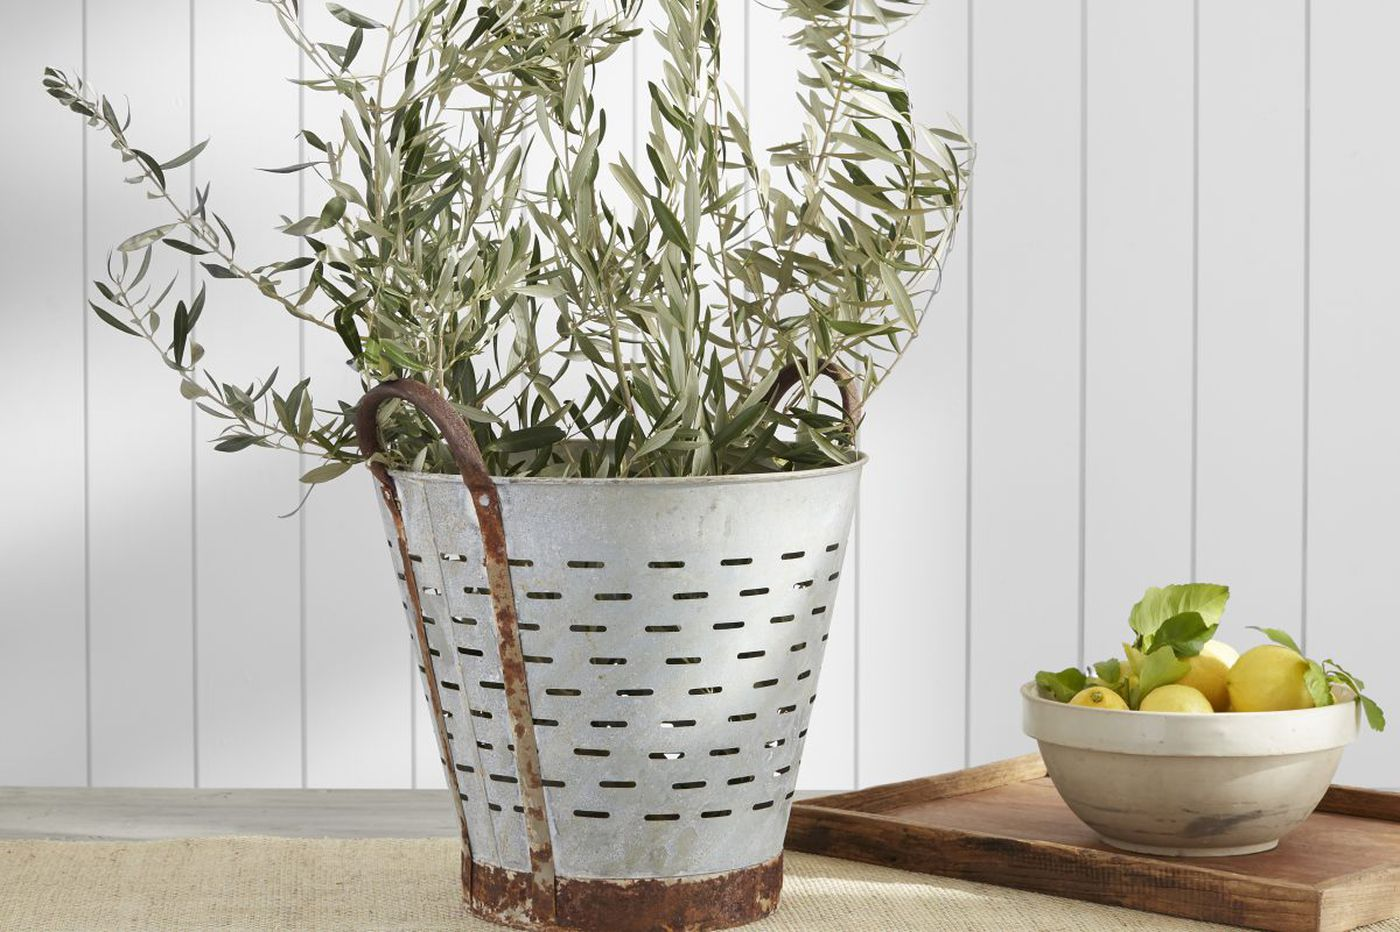 Ask Jennifer Adams: What edible indoor plants can I grow?